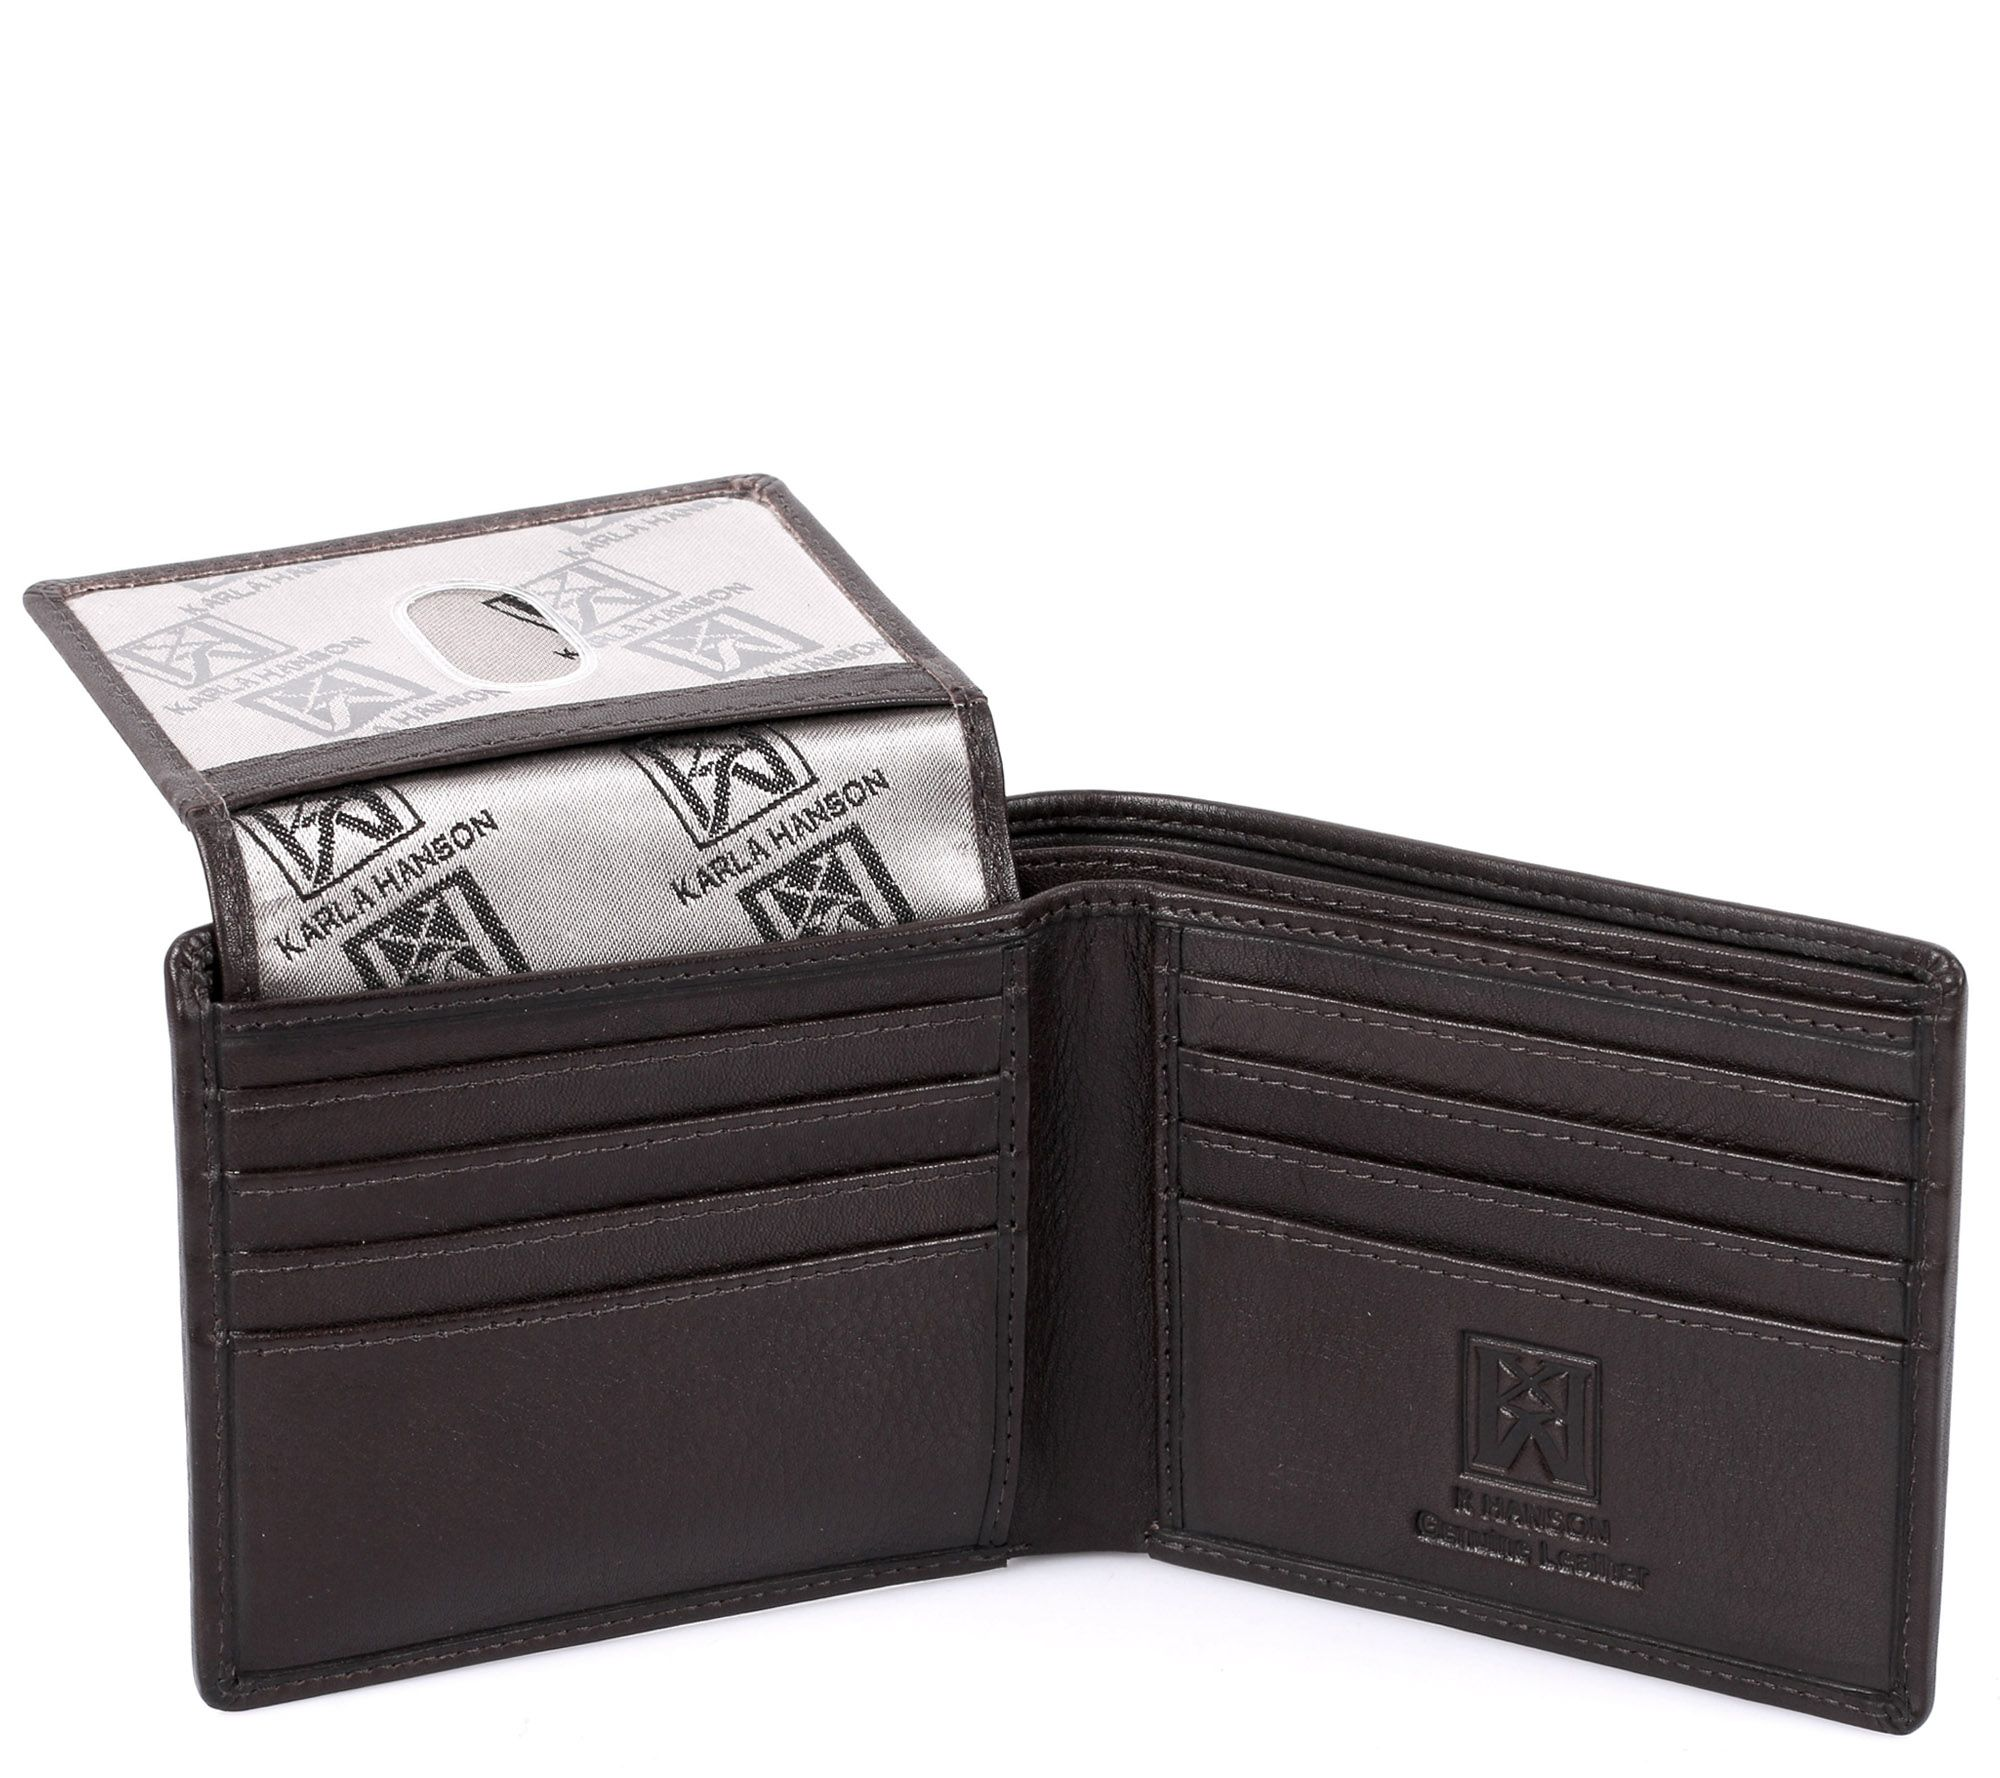 Karla Hanson Men S Leather Wallet With Card Insert Qvc Com